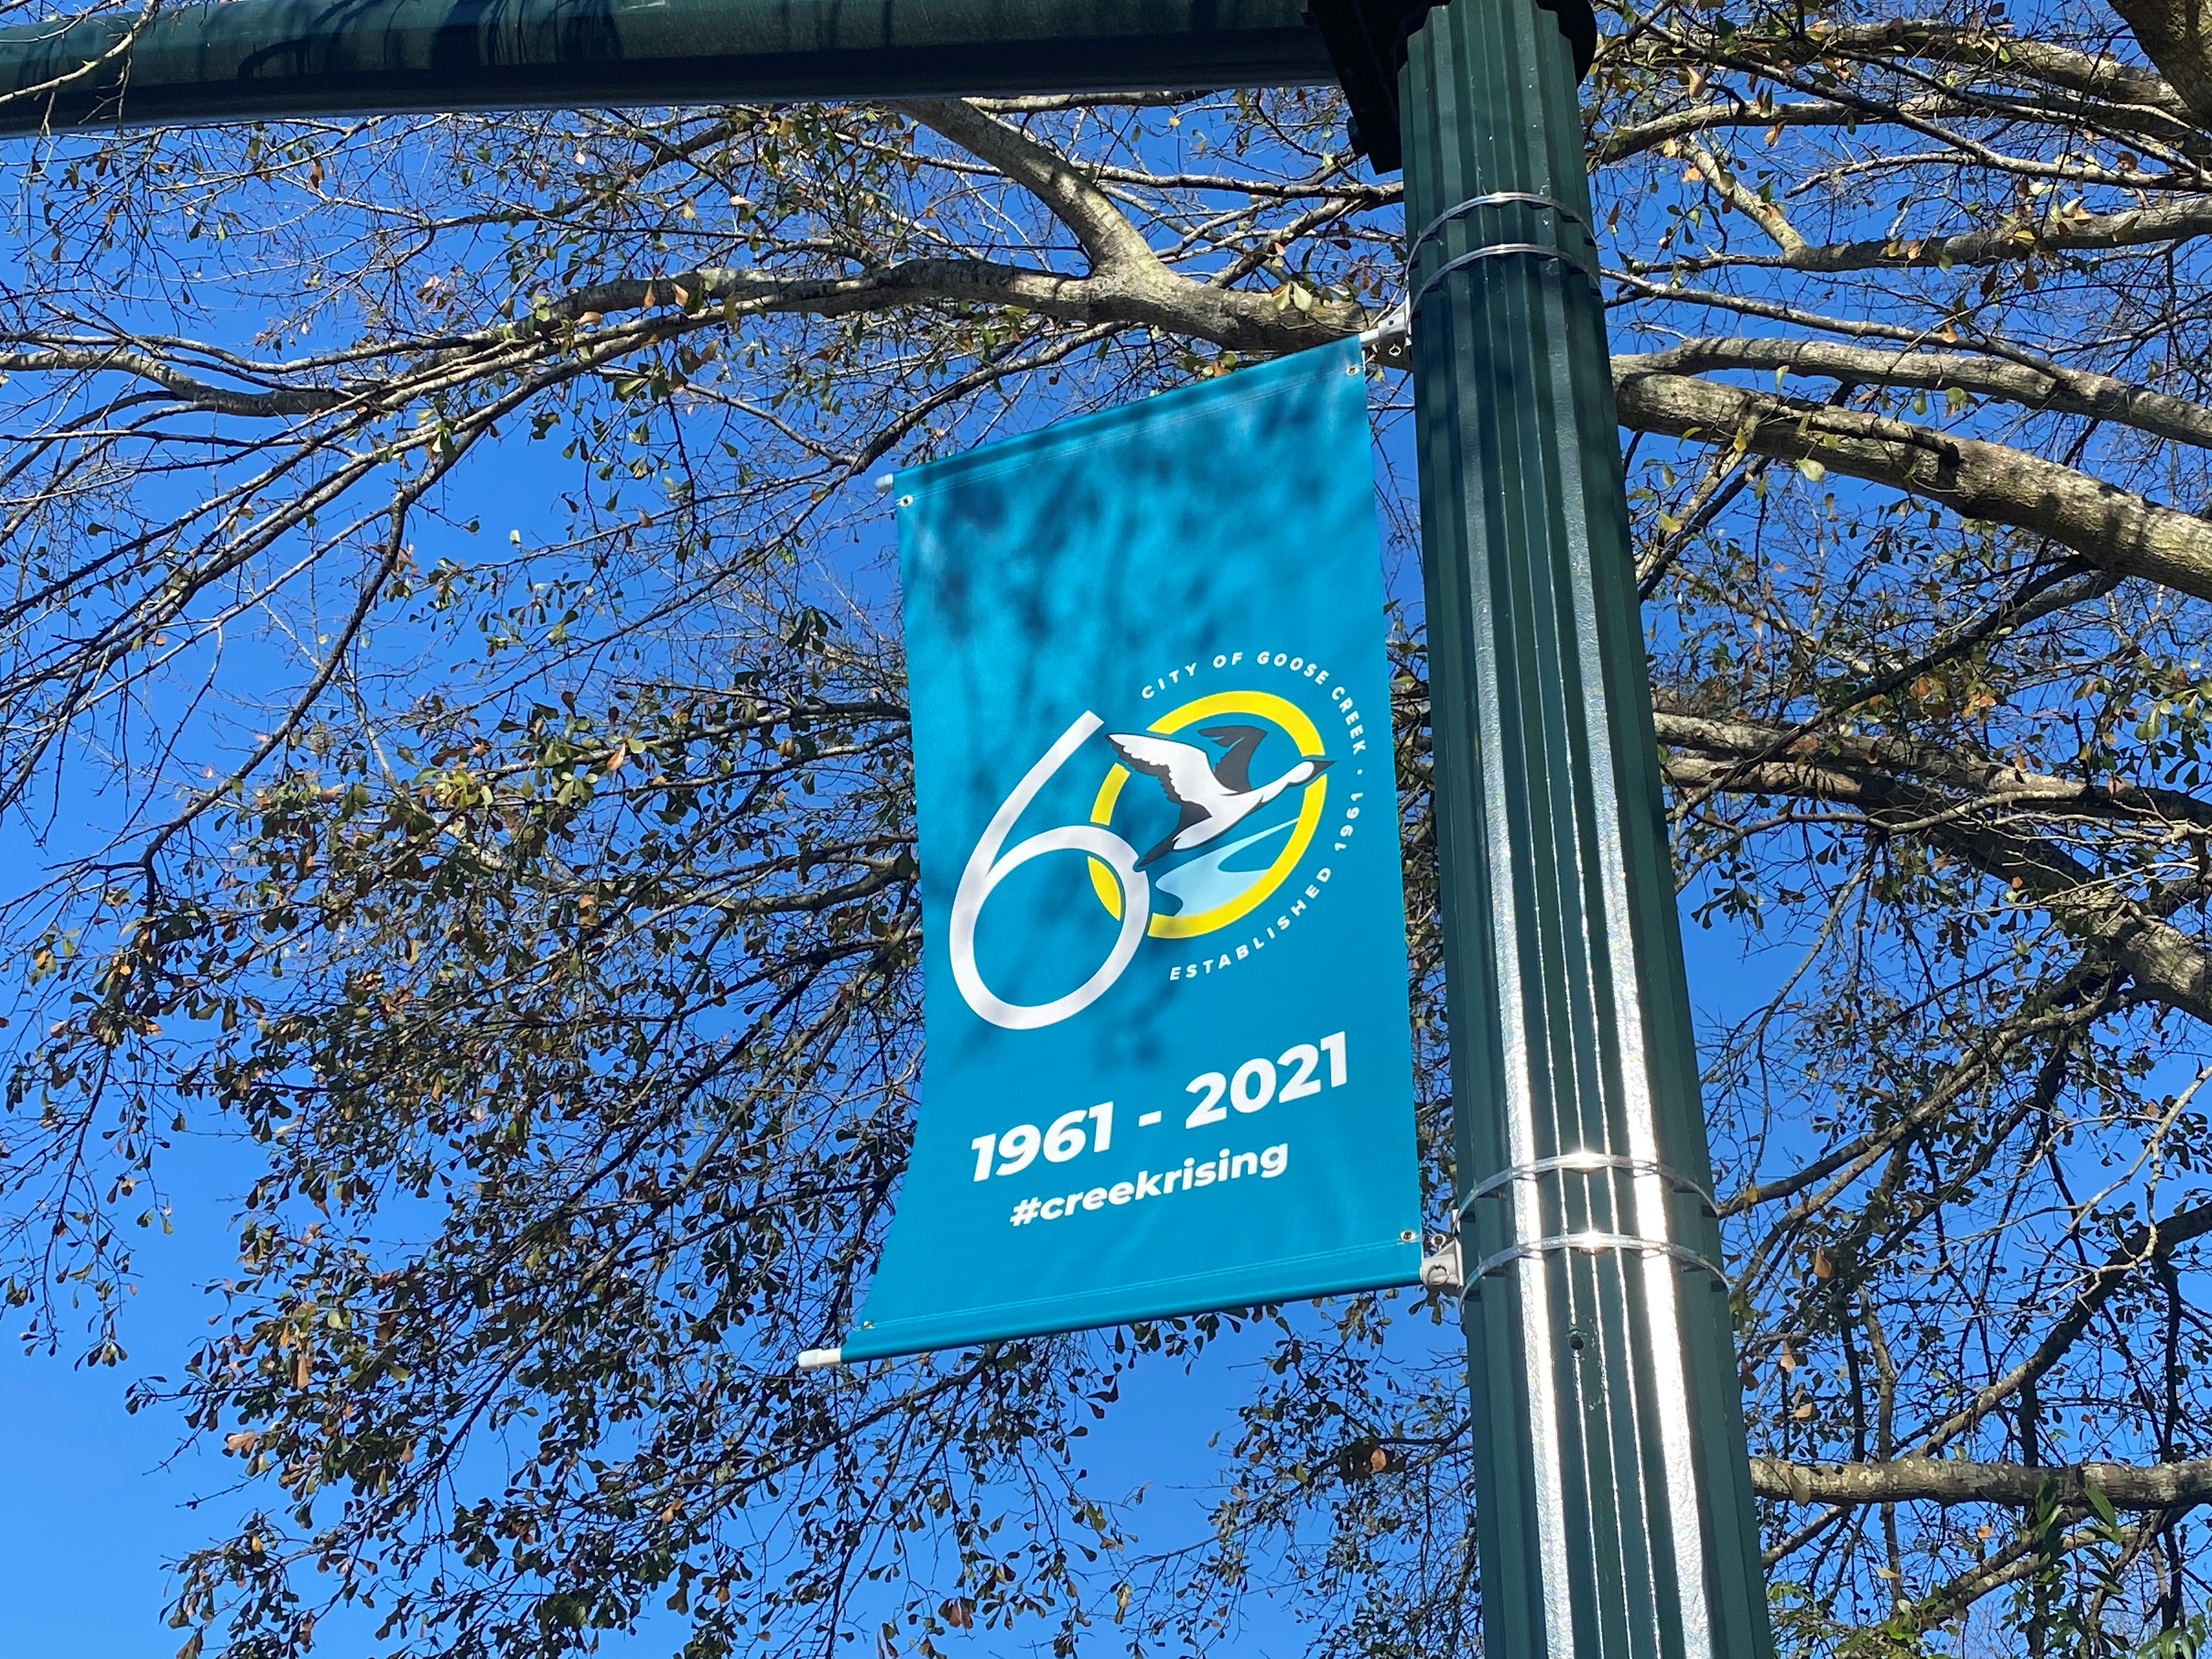 60th banner on St. James Avenue